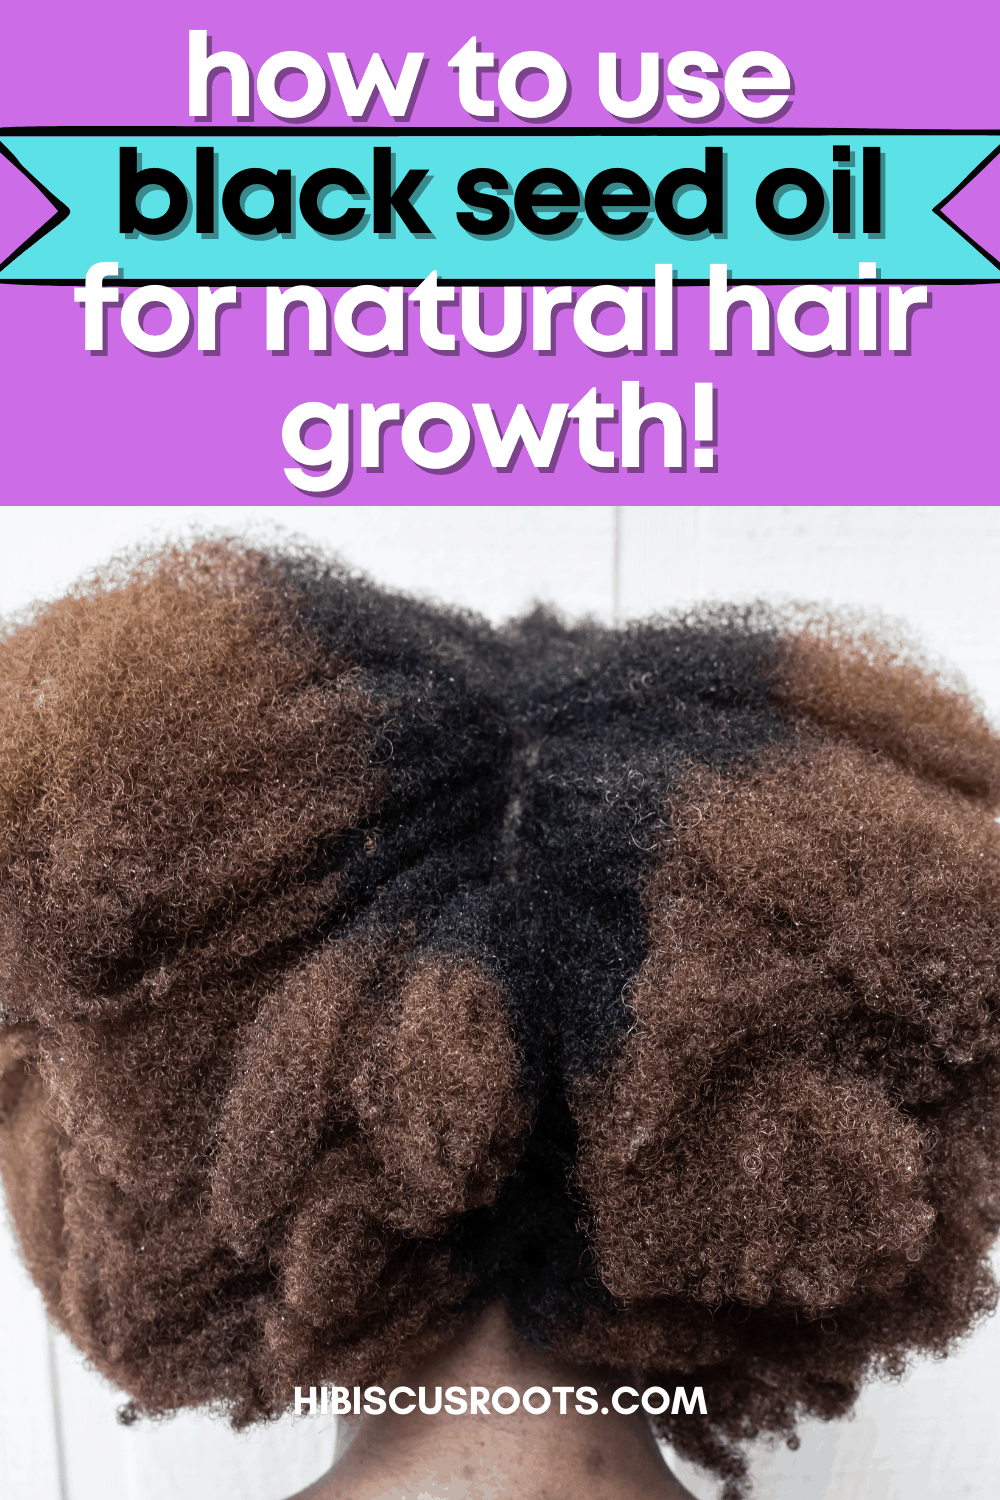 The Benefits of Black Seed Oil for Natural Hair!